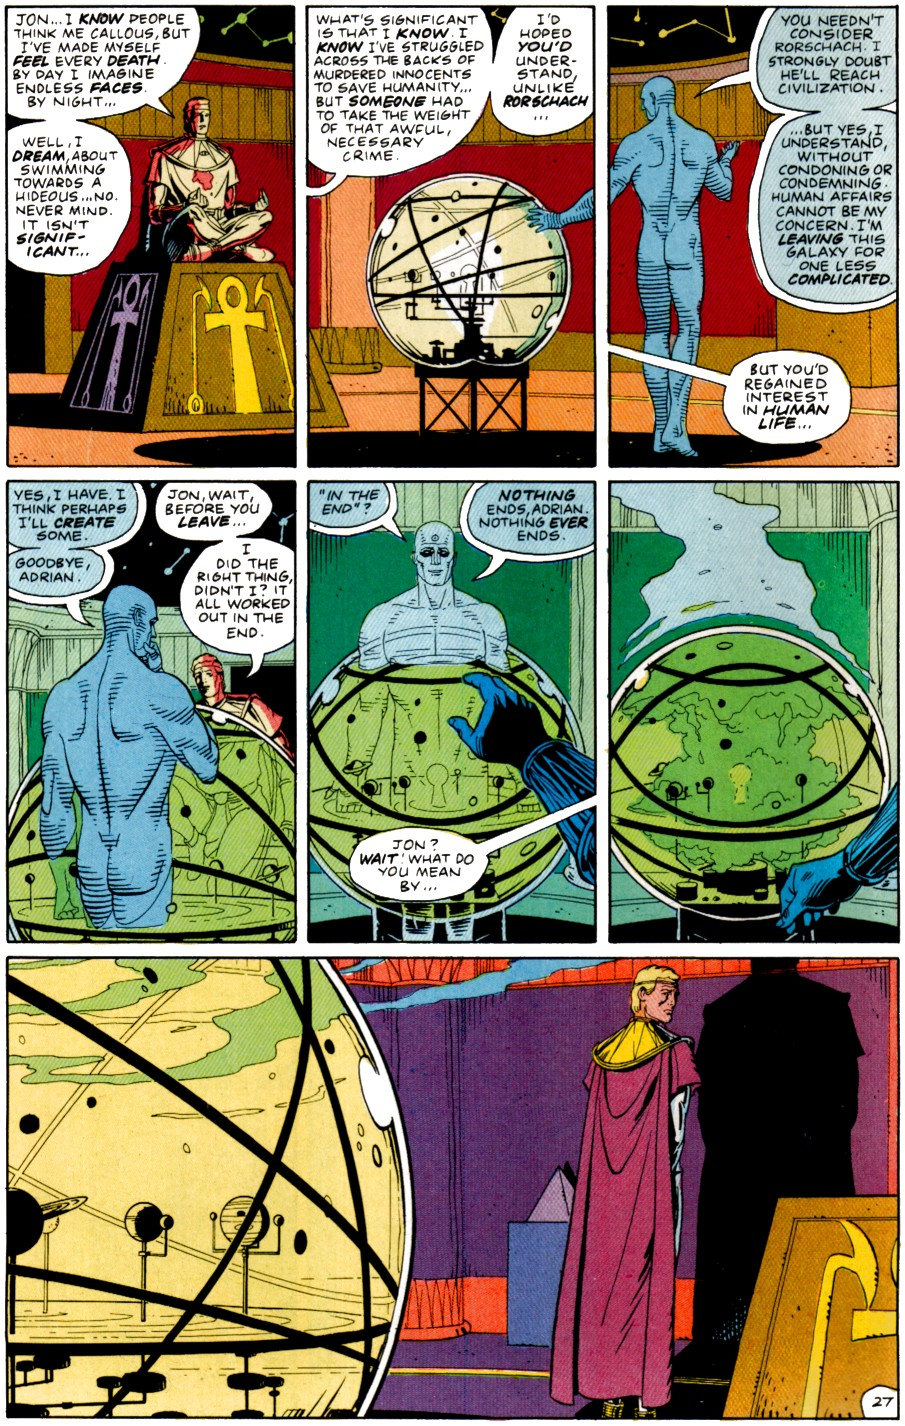 Did Doctor Manhattan Create the DC Universe?